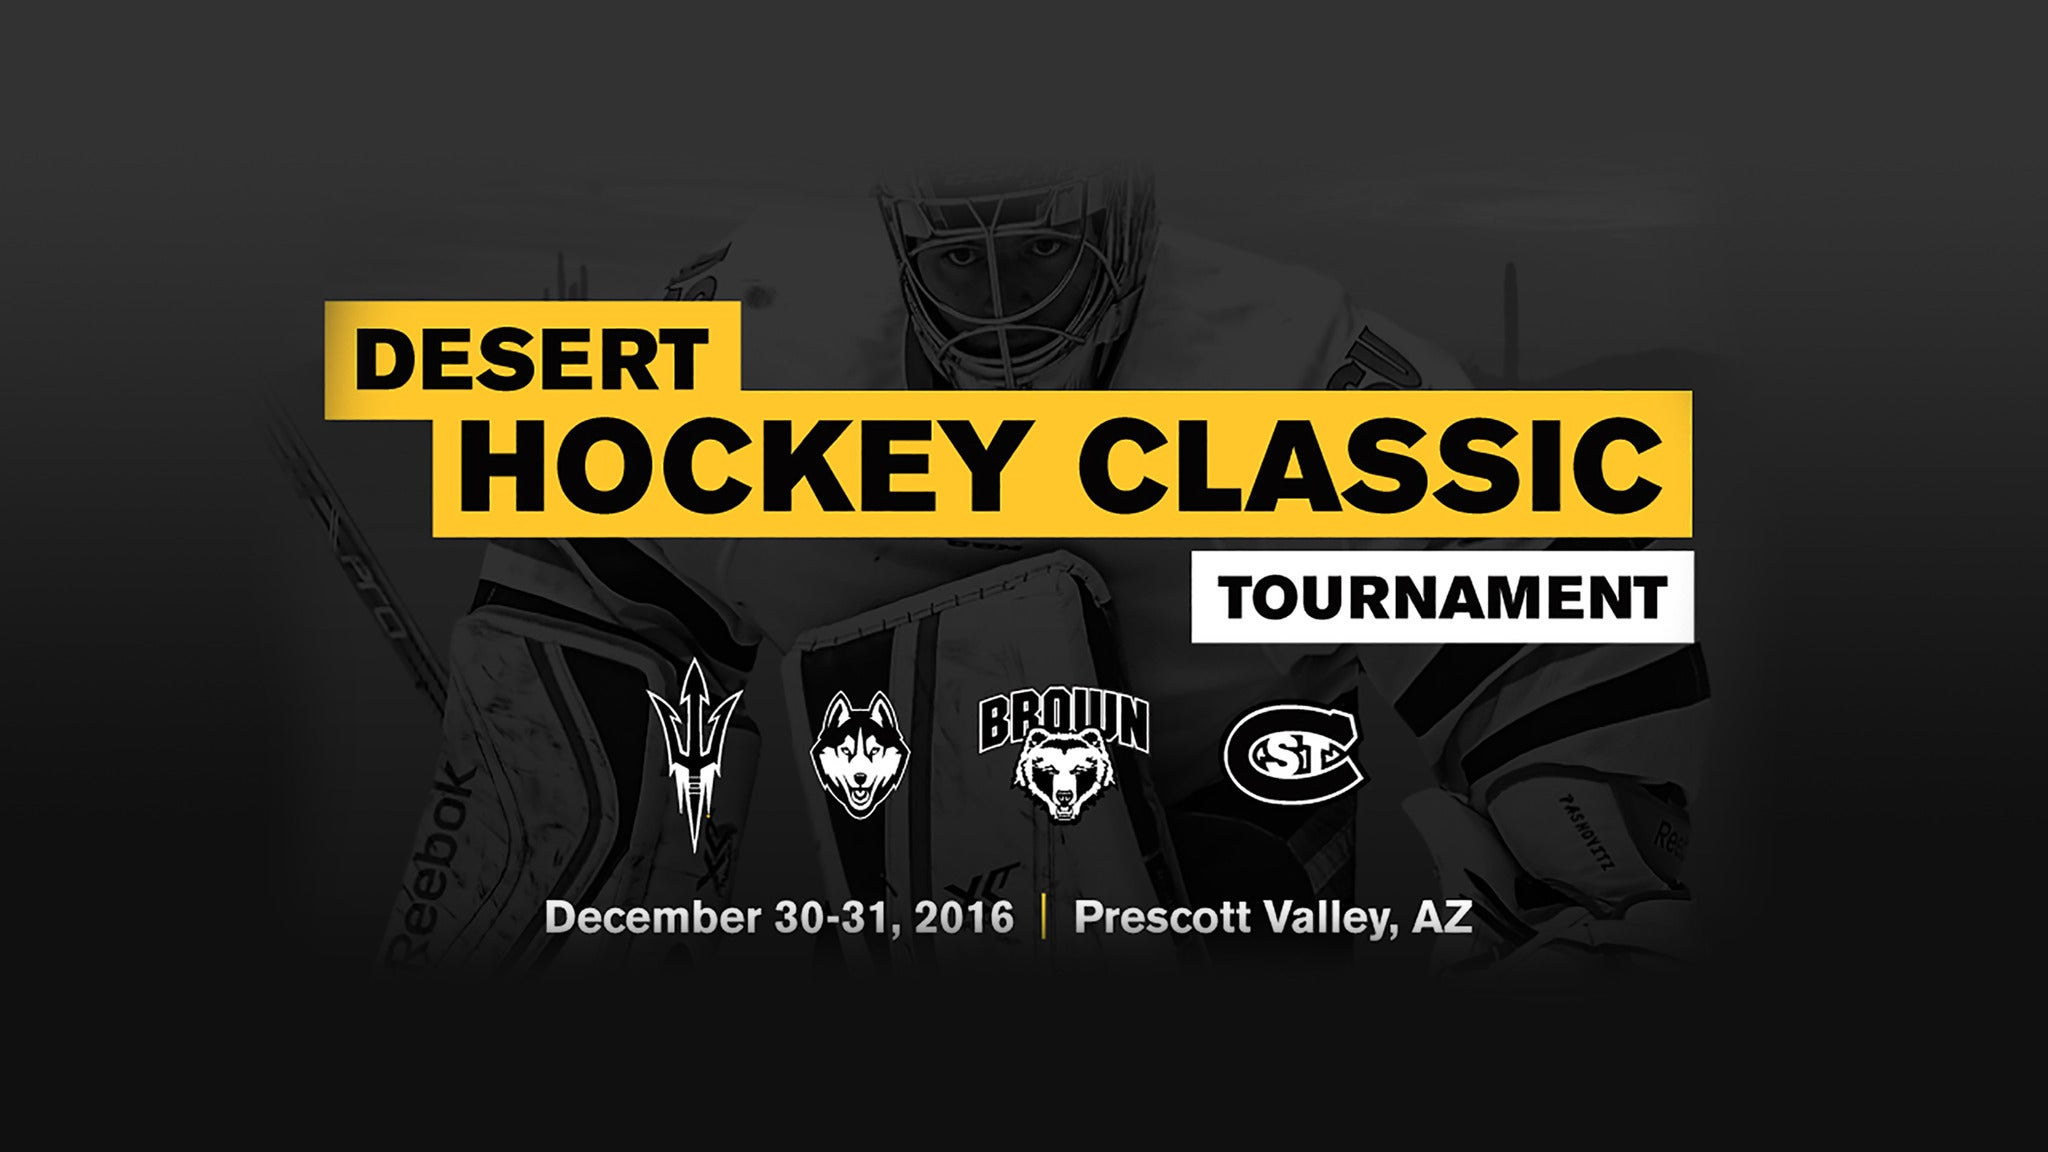 Desert Hockey Classic at The Underground